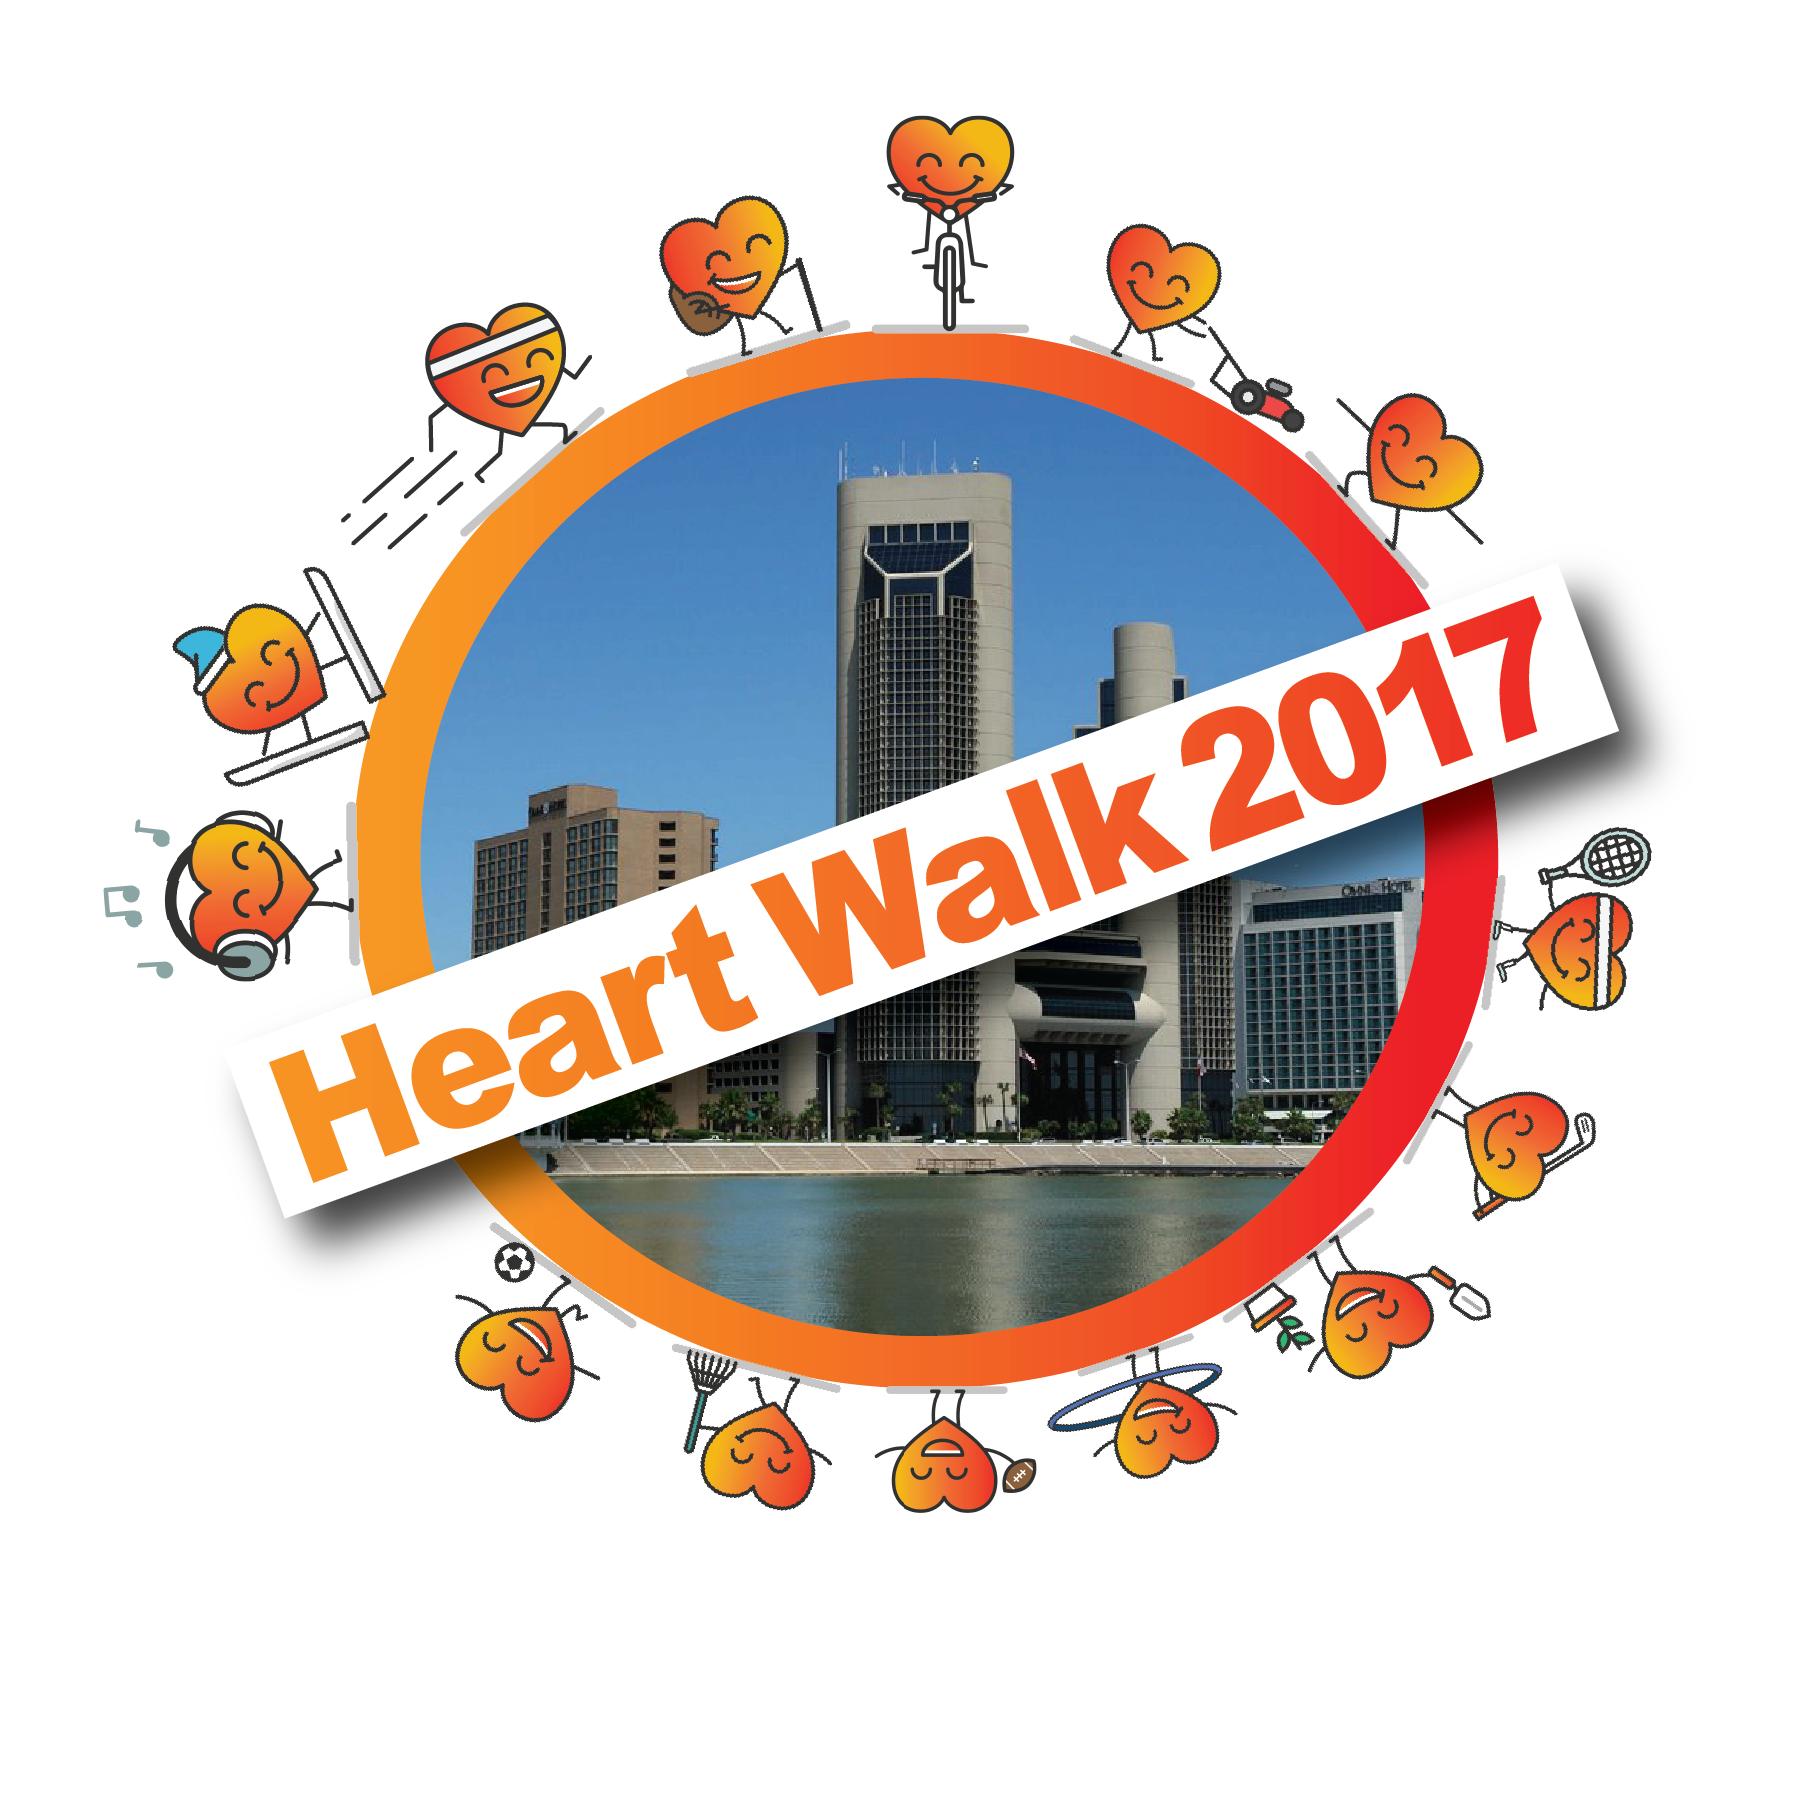 Graduation clipart walk 8:00AM 7 Oct 2017 Heart